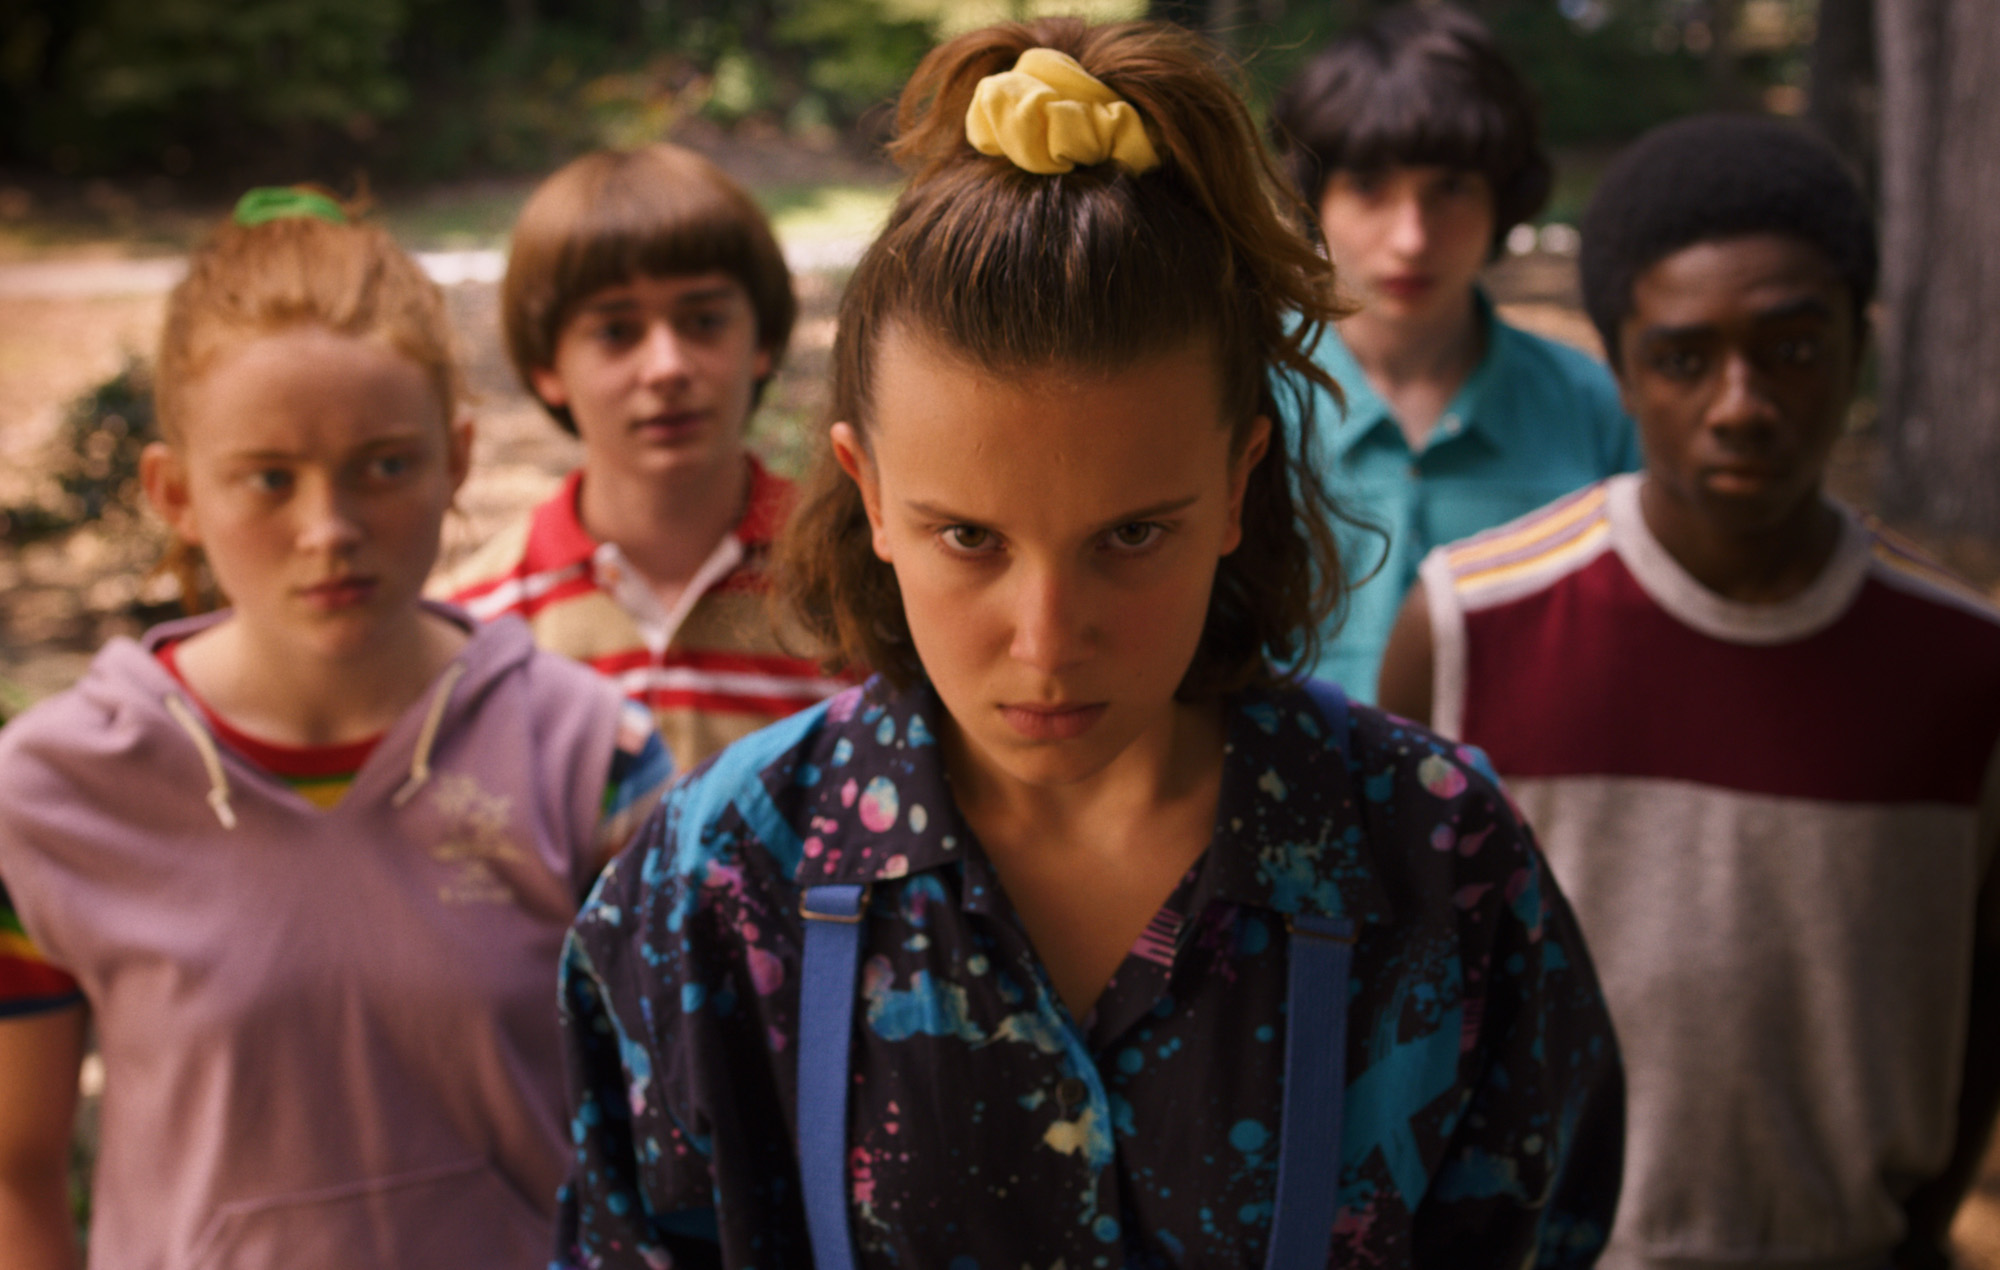 This 'Stranger Things' fan theory suggests Eleven will be villain of season  four | NME